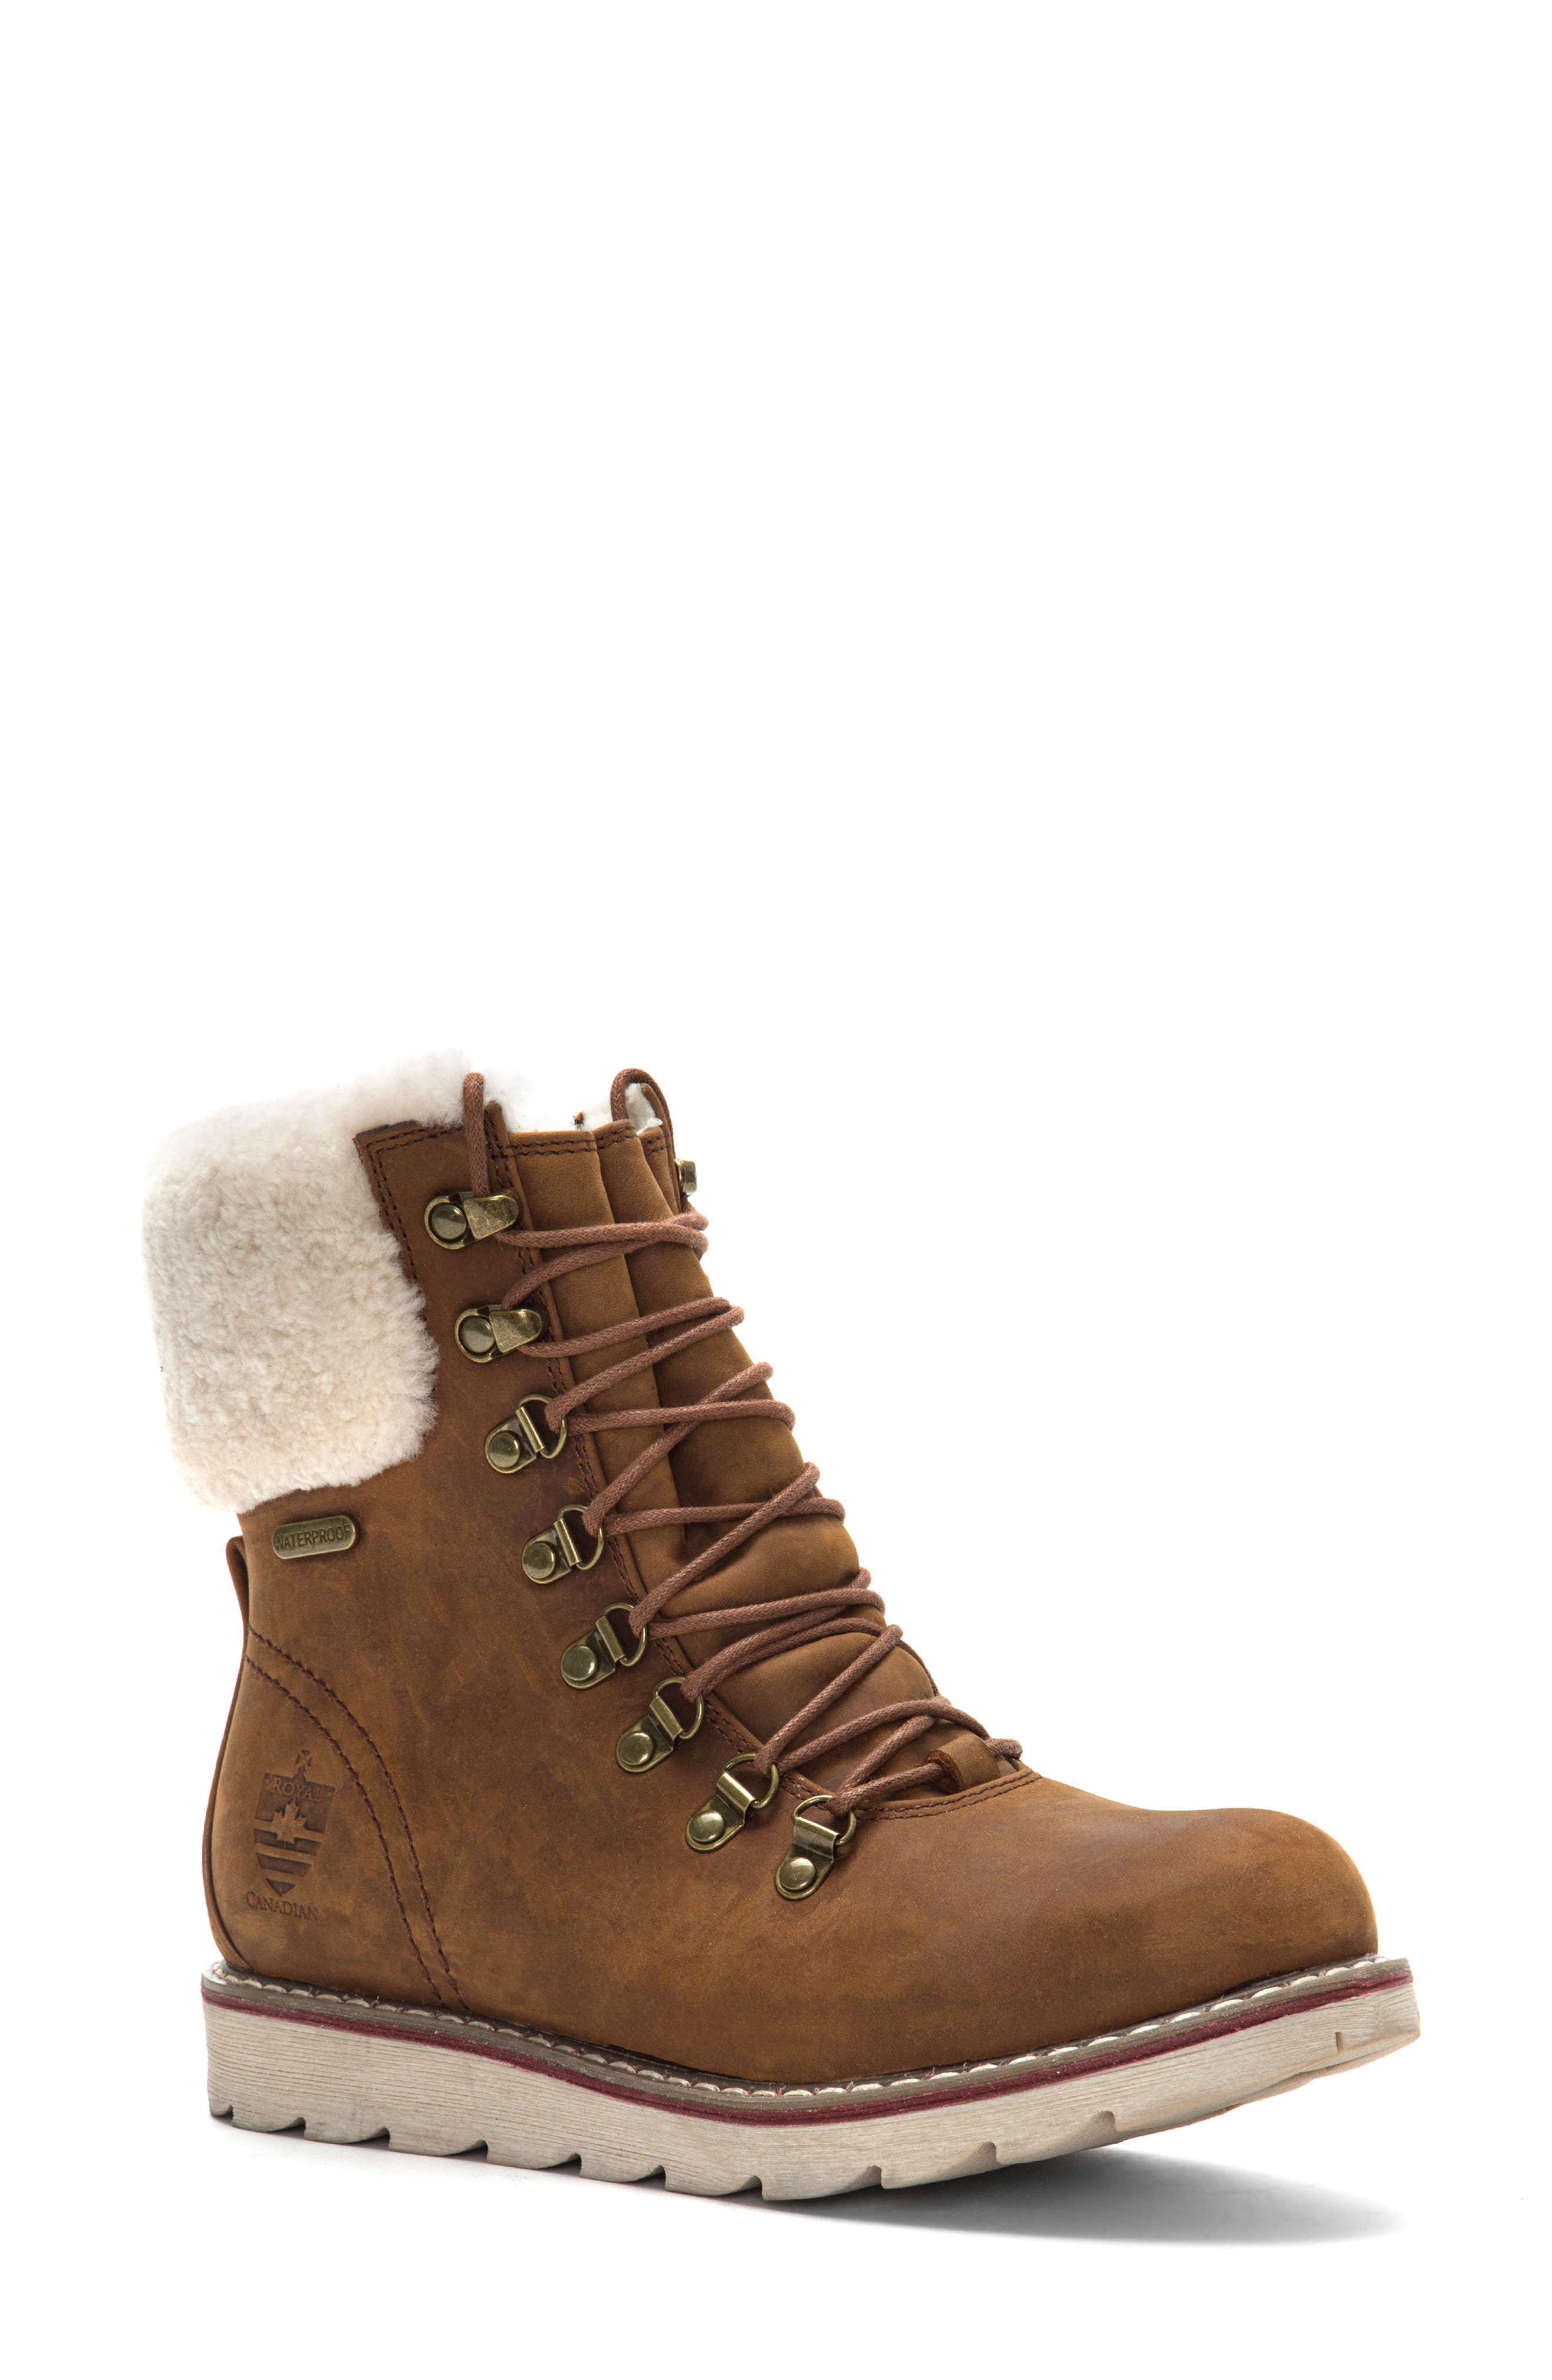 ROYAL CANADIAN, Lethbridge Waterproof Snow Boot with Genuine Shearling Cuff, Main thumbnail 1, color, COTTAGE BROWN LEATHER